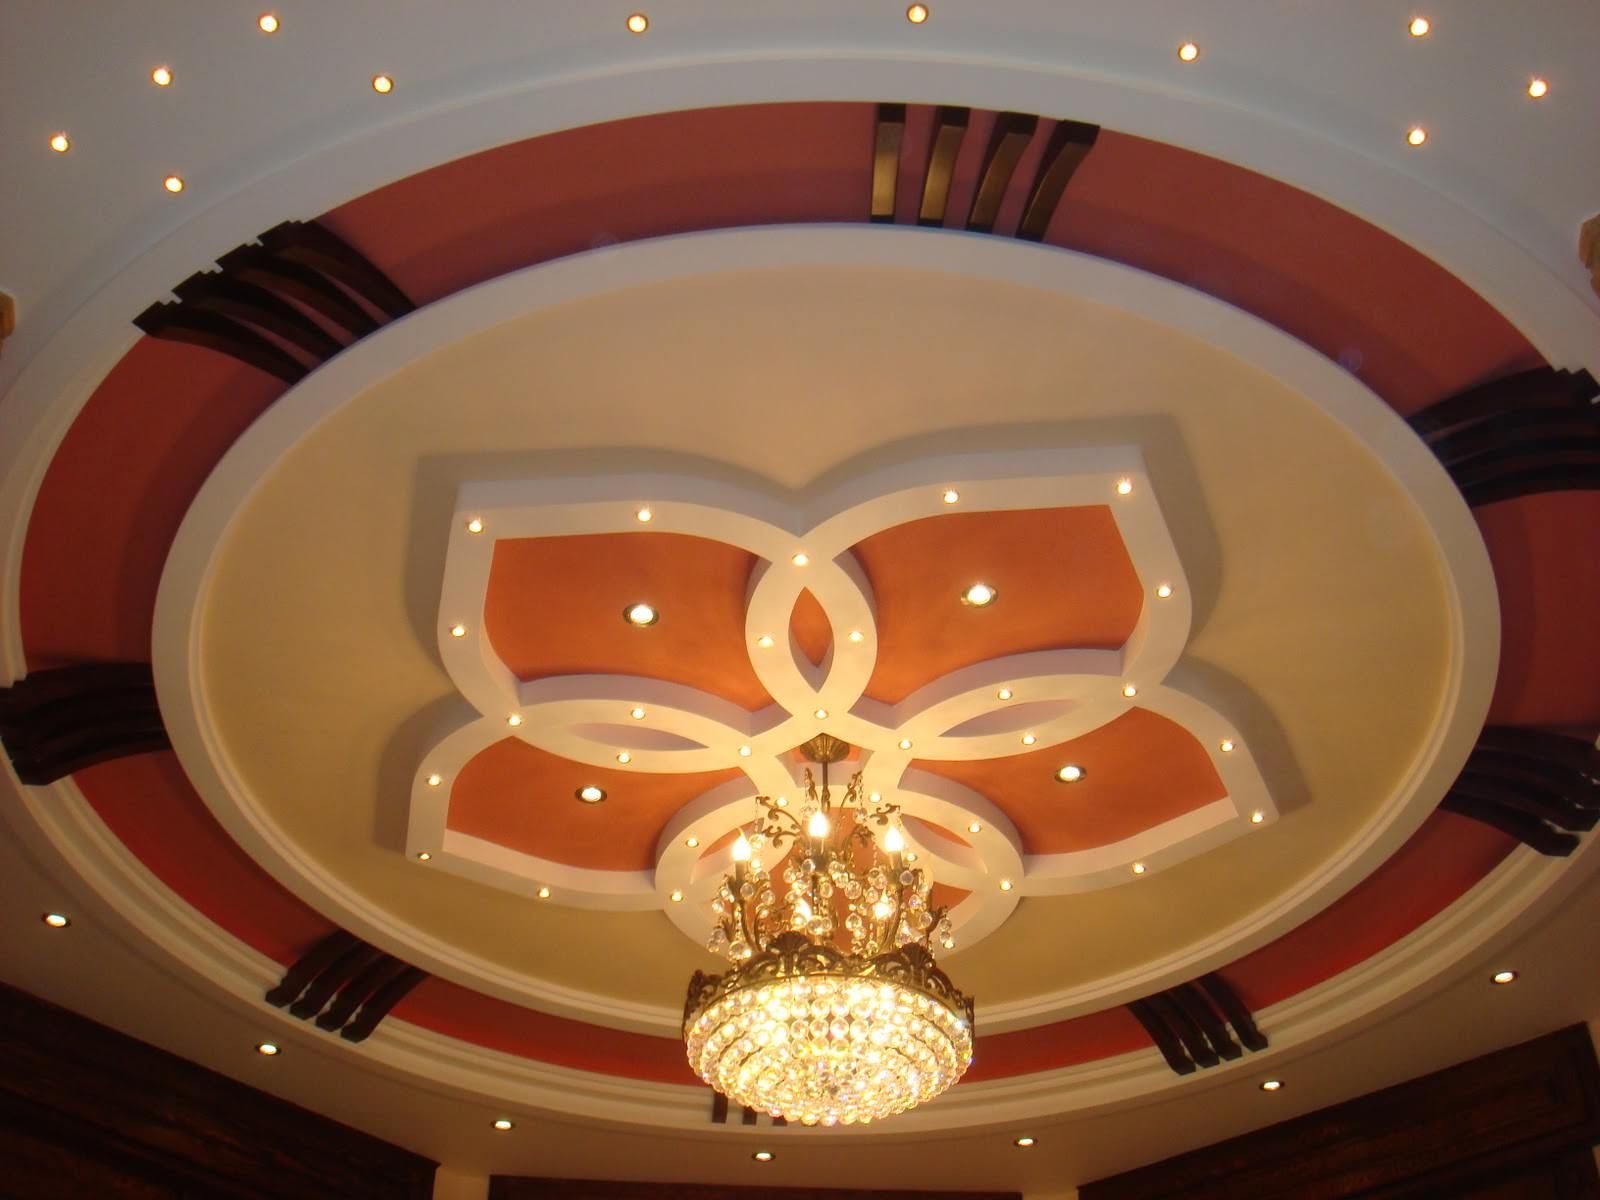 Awesome Pop Design In Ceiling Photo 32 For Your Designing Design